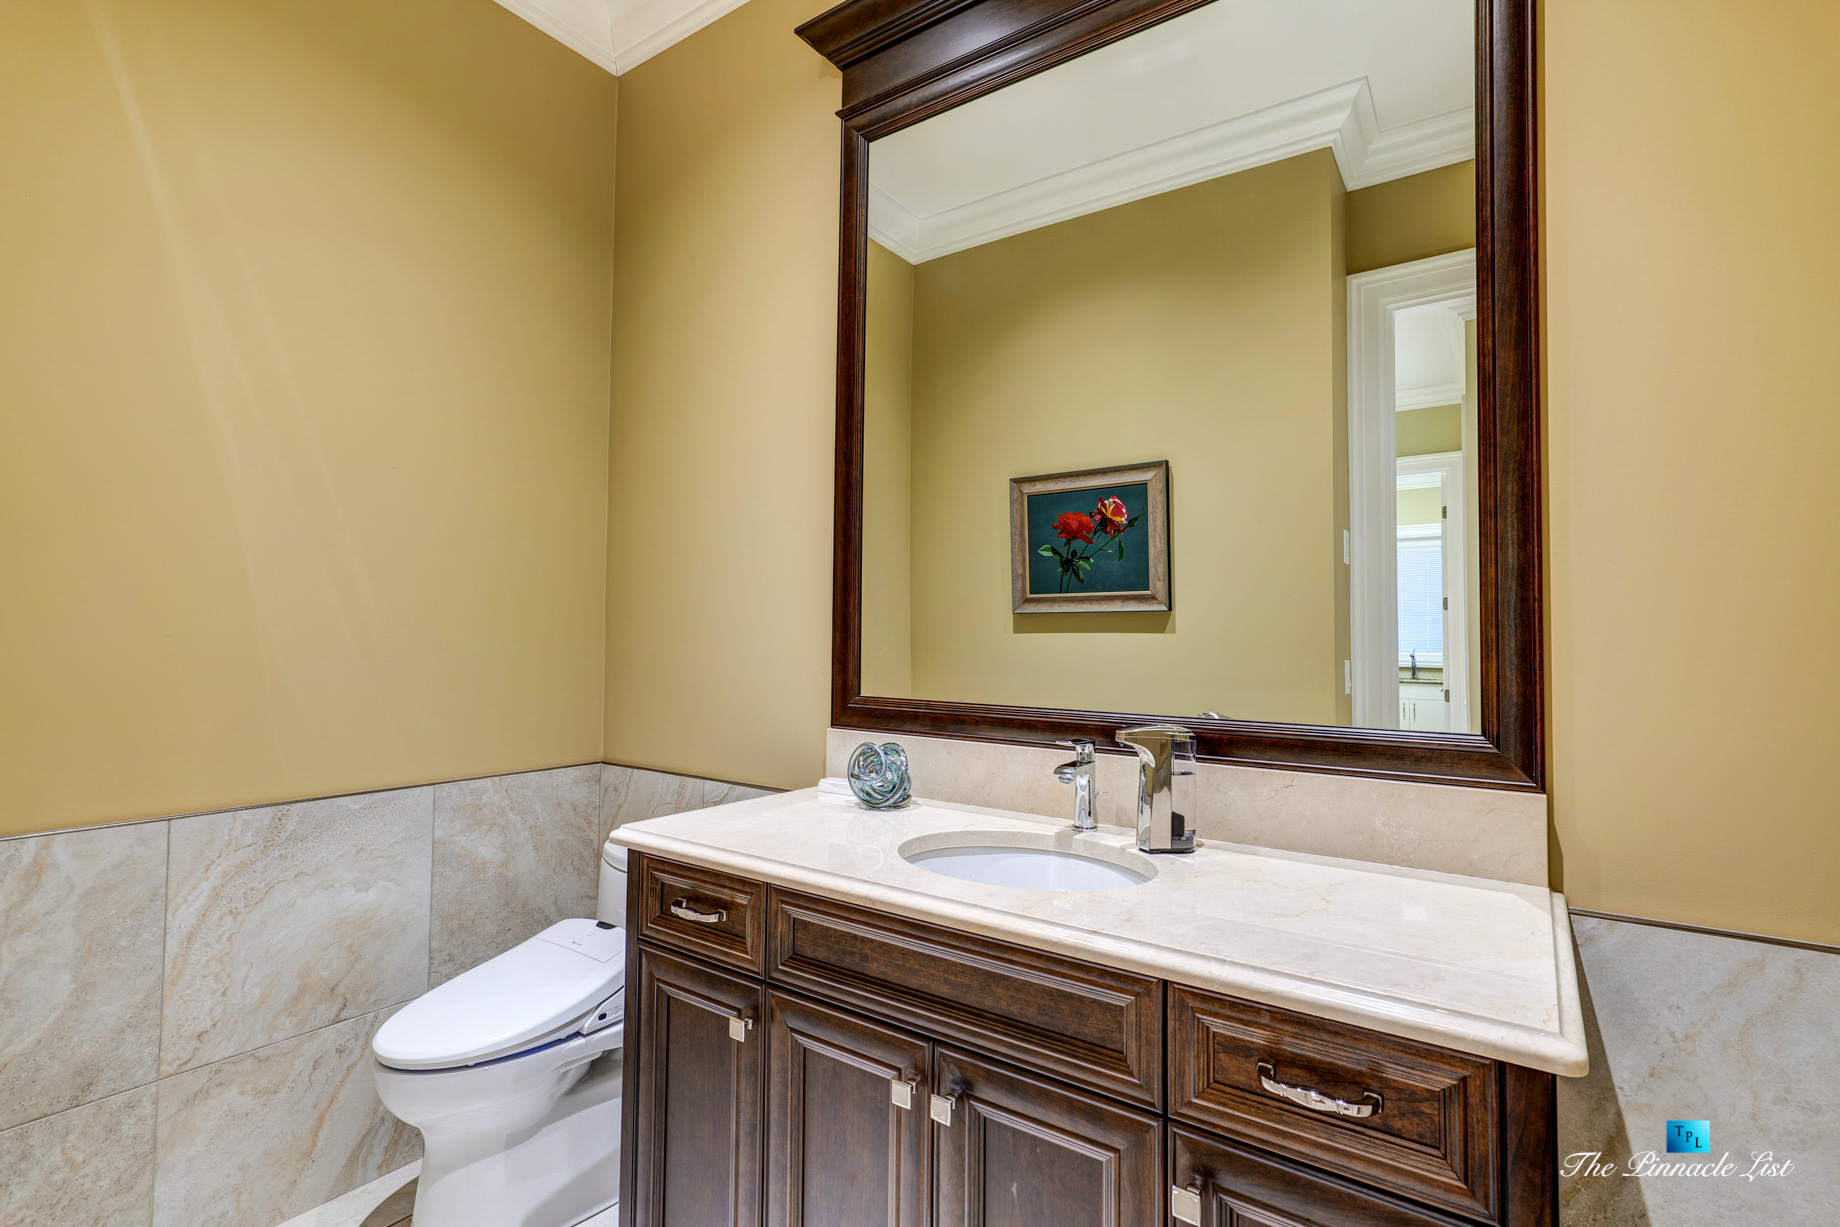 2057 Ridge Mountain Drive, Anmore, BC, Canada - Washroom - Luxury Real Estate - West Coast Greater Vancouver Home